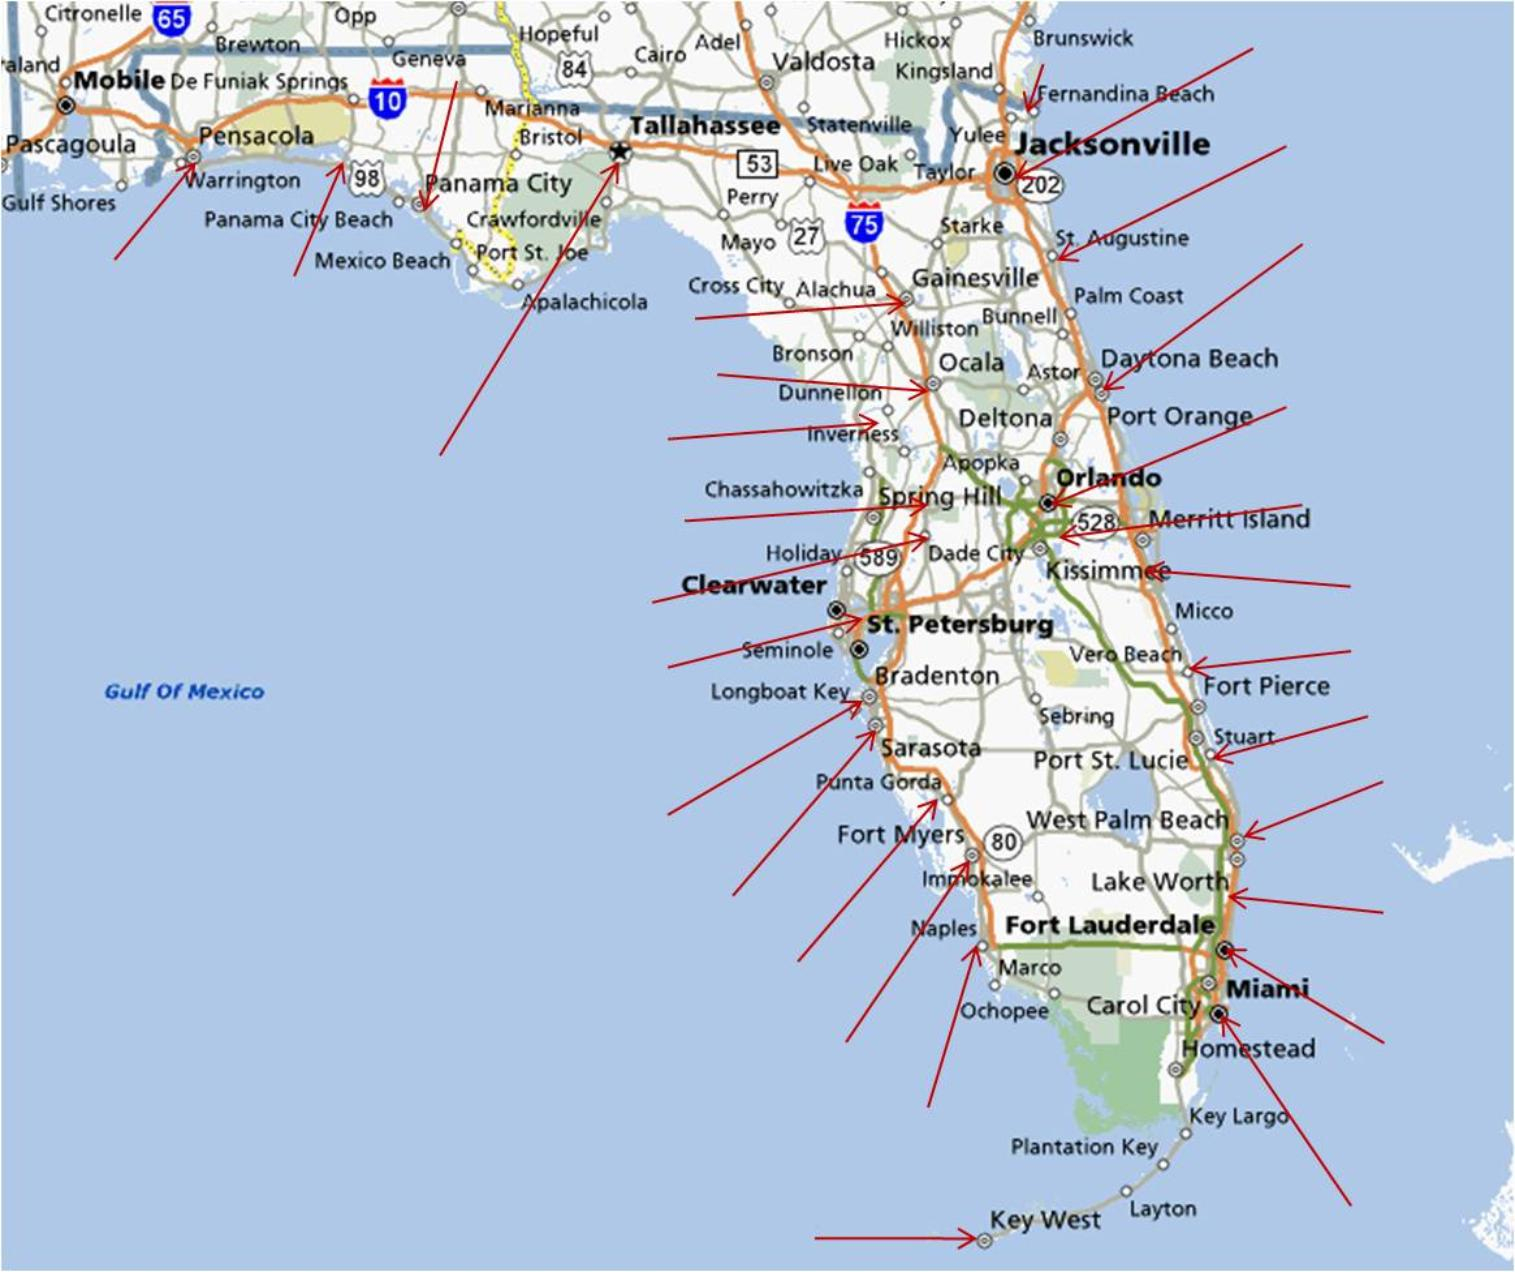 Map Of The Gulf Coast Of Florida And Travel Information | Download - Map Of Florida Beaches On The Gulf